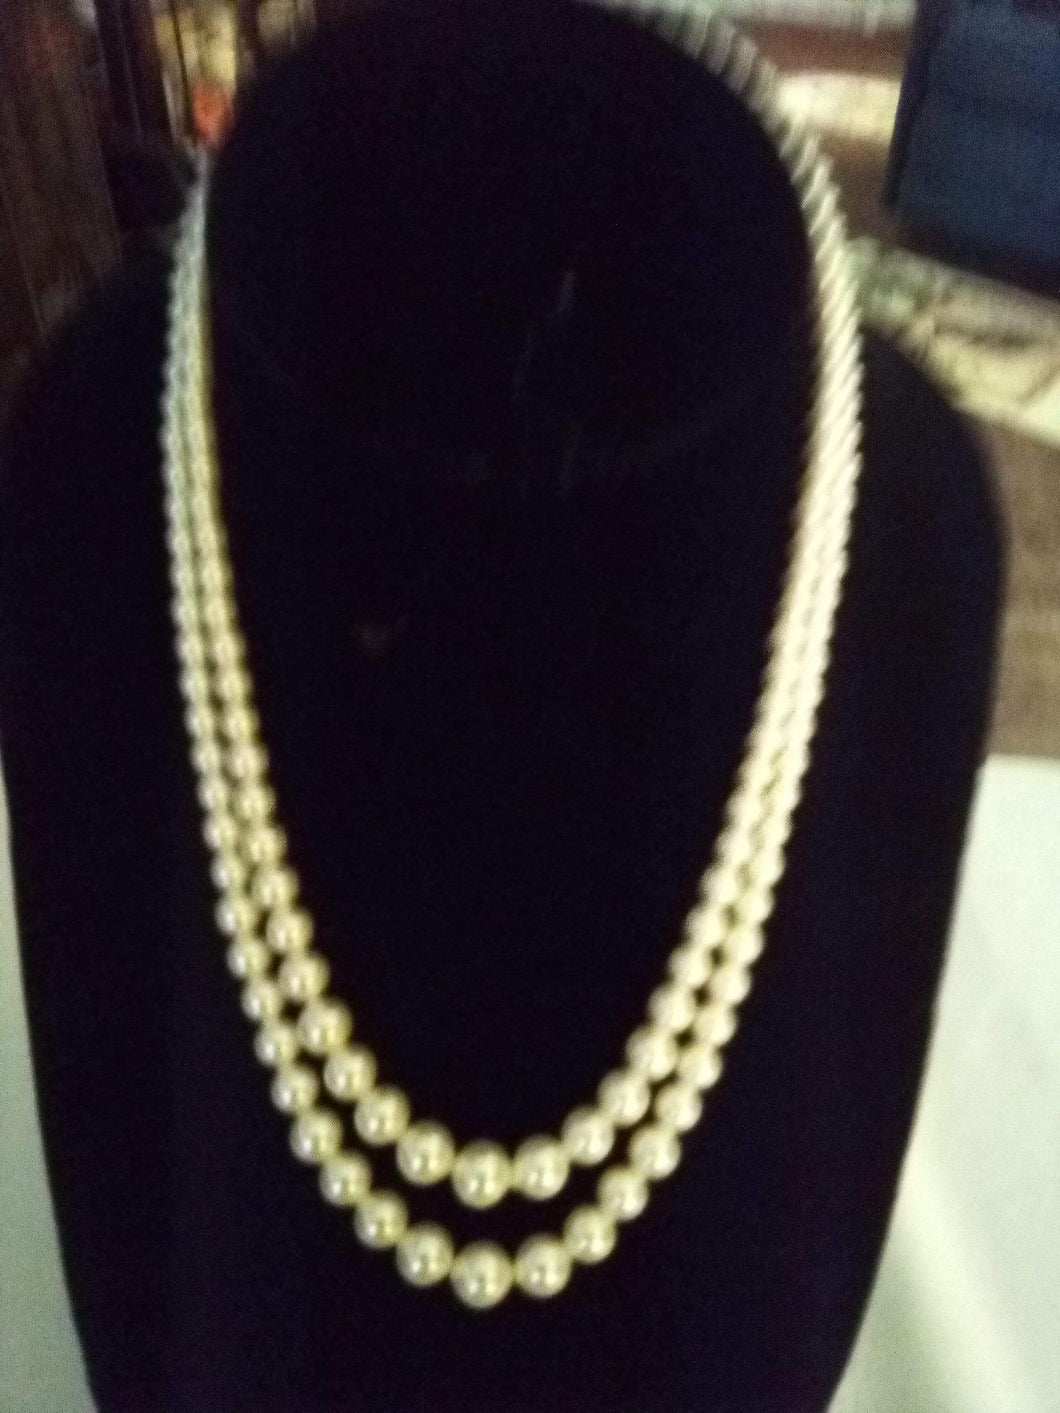 Beautiful pearl like necklace with Sterling clasp - B&P'sringsnthings